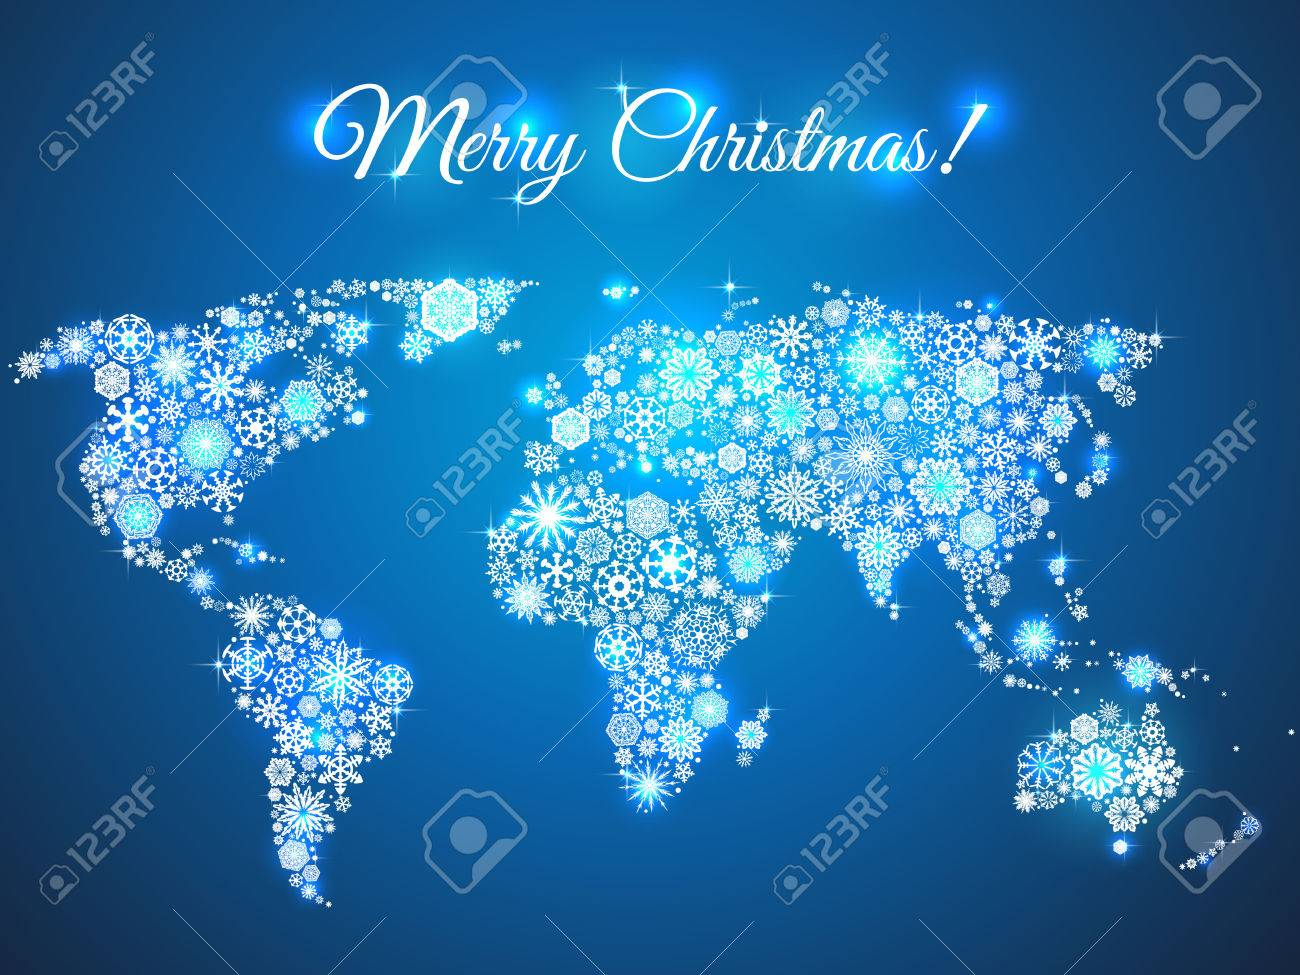 snowflakes world map for the new year, greeting card on blue background - 33487606